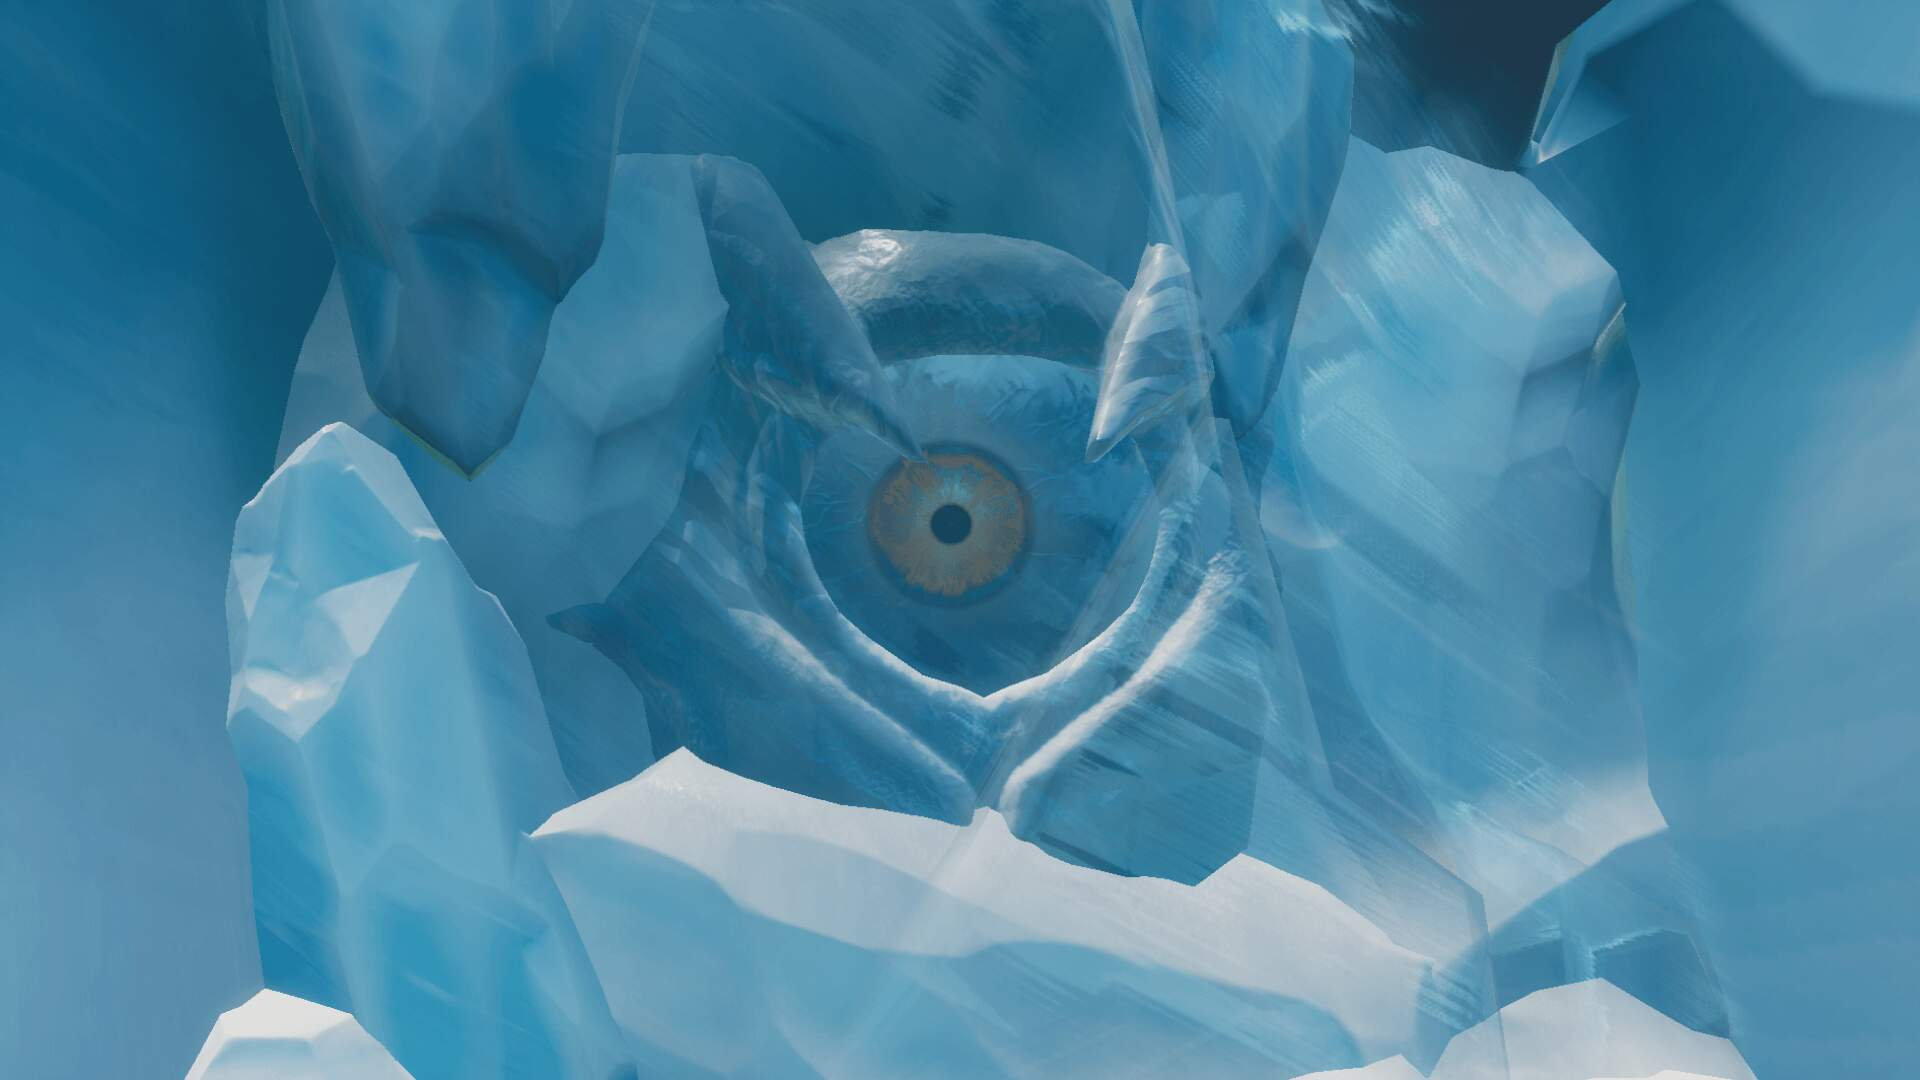 Fortnite Players Discover a Gross Giant Eyeball Under the Island. Is it a Godzilla Movie Tie-in?